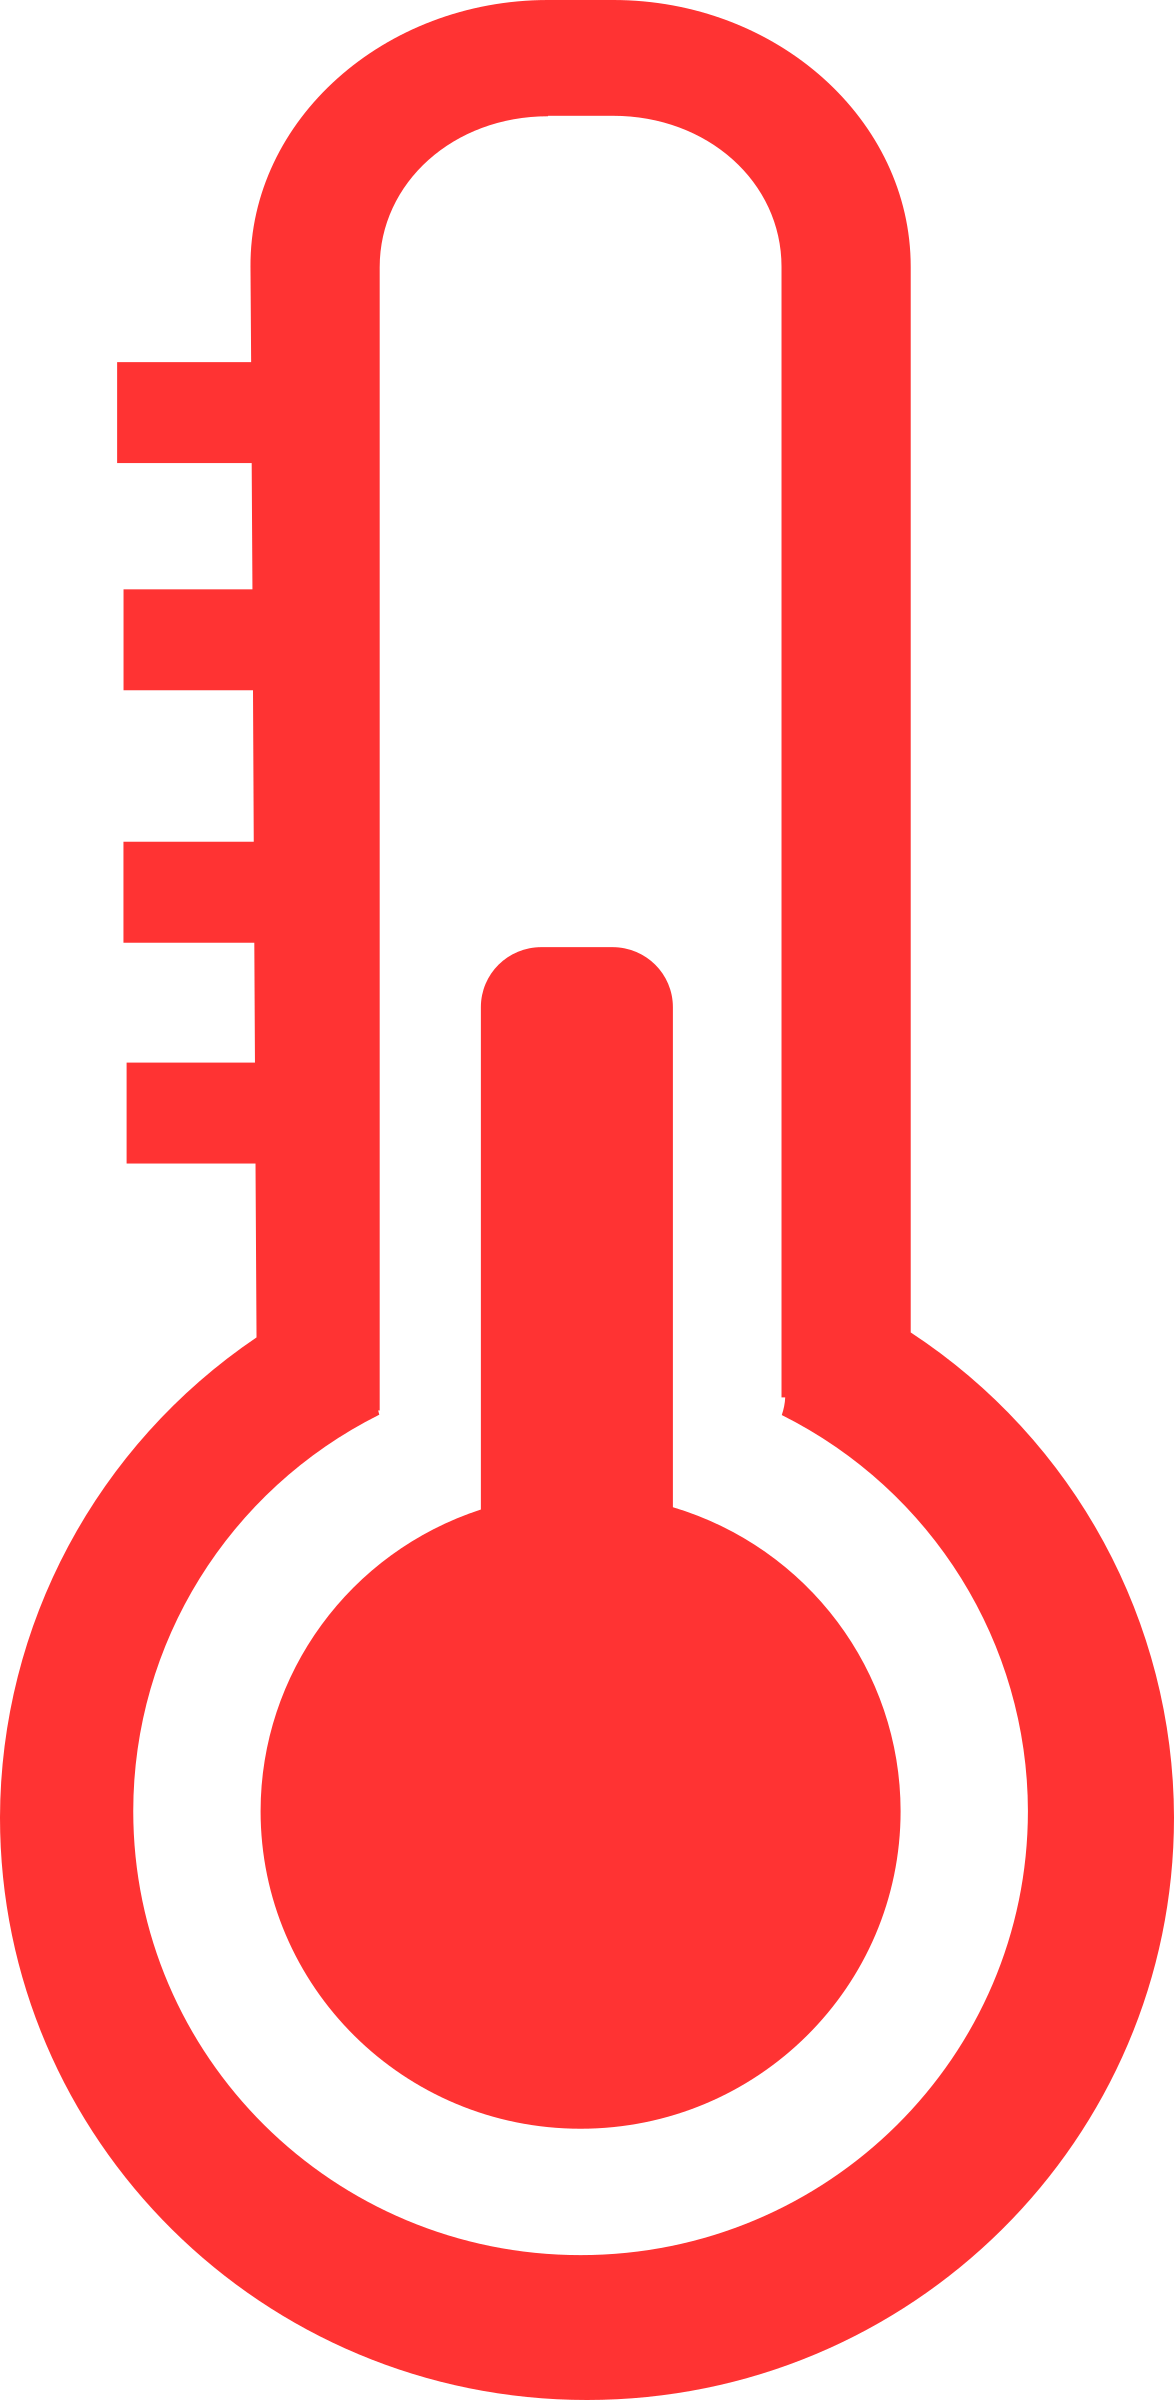 graphic stock Big image png. Thermometer clipart